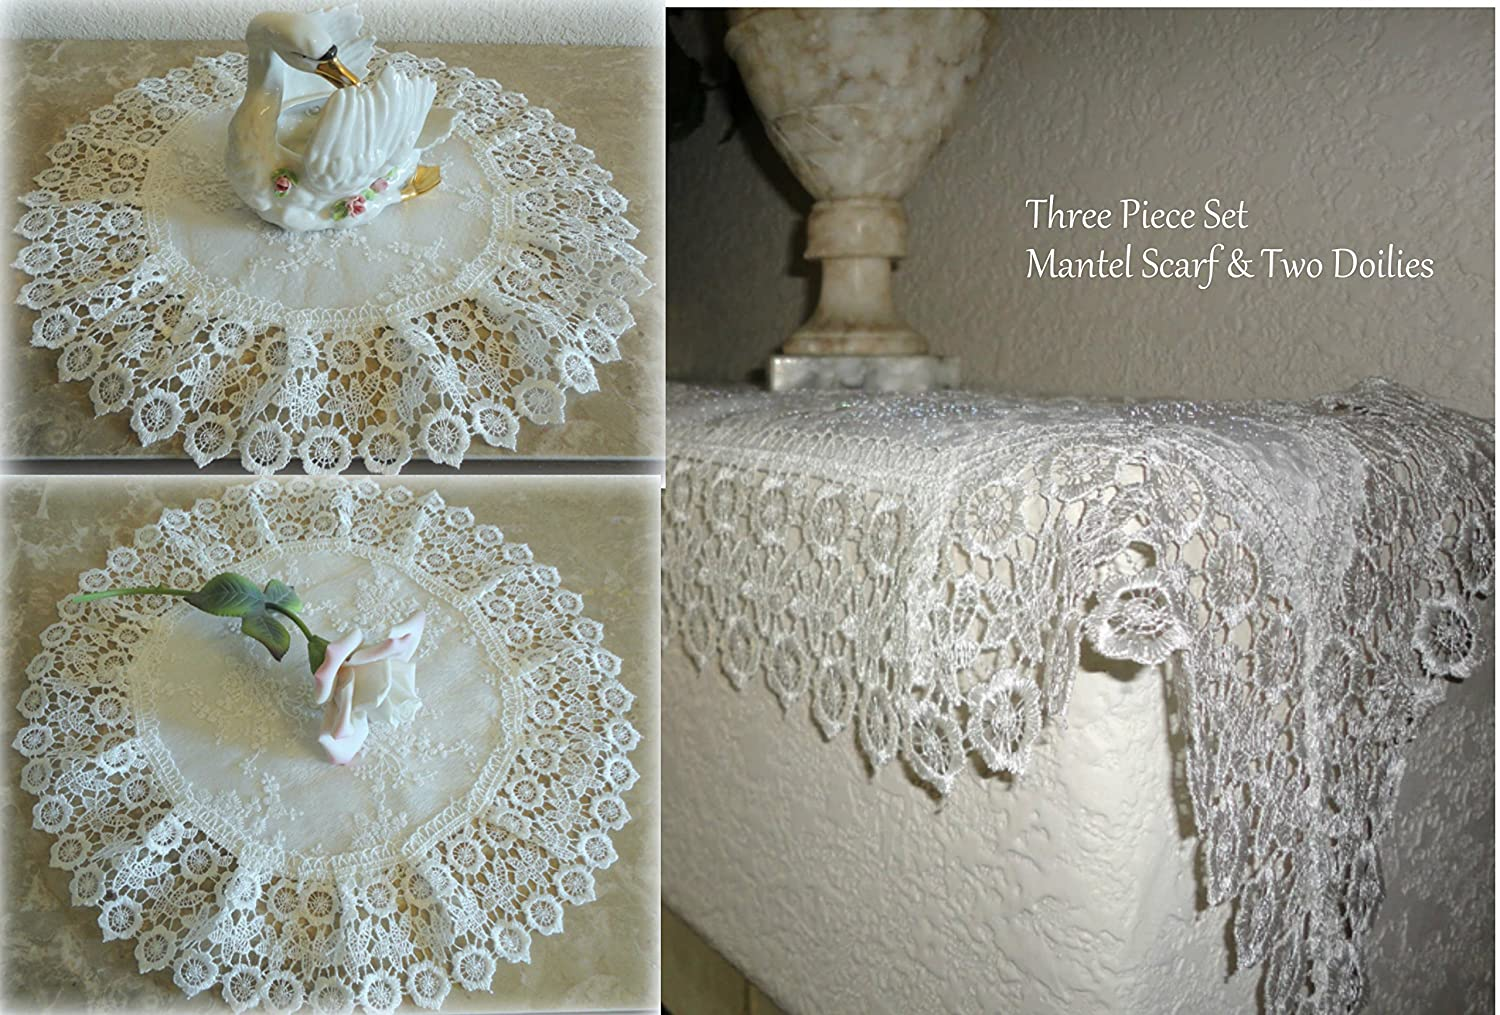 Galleria di Giovanni 3 Piece Gift Set Ivory Princess European Lace Mantel Scarf & Two Doilies